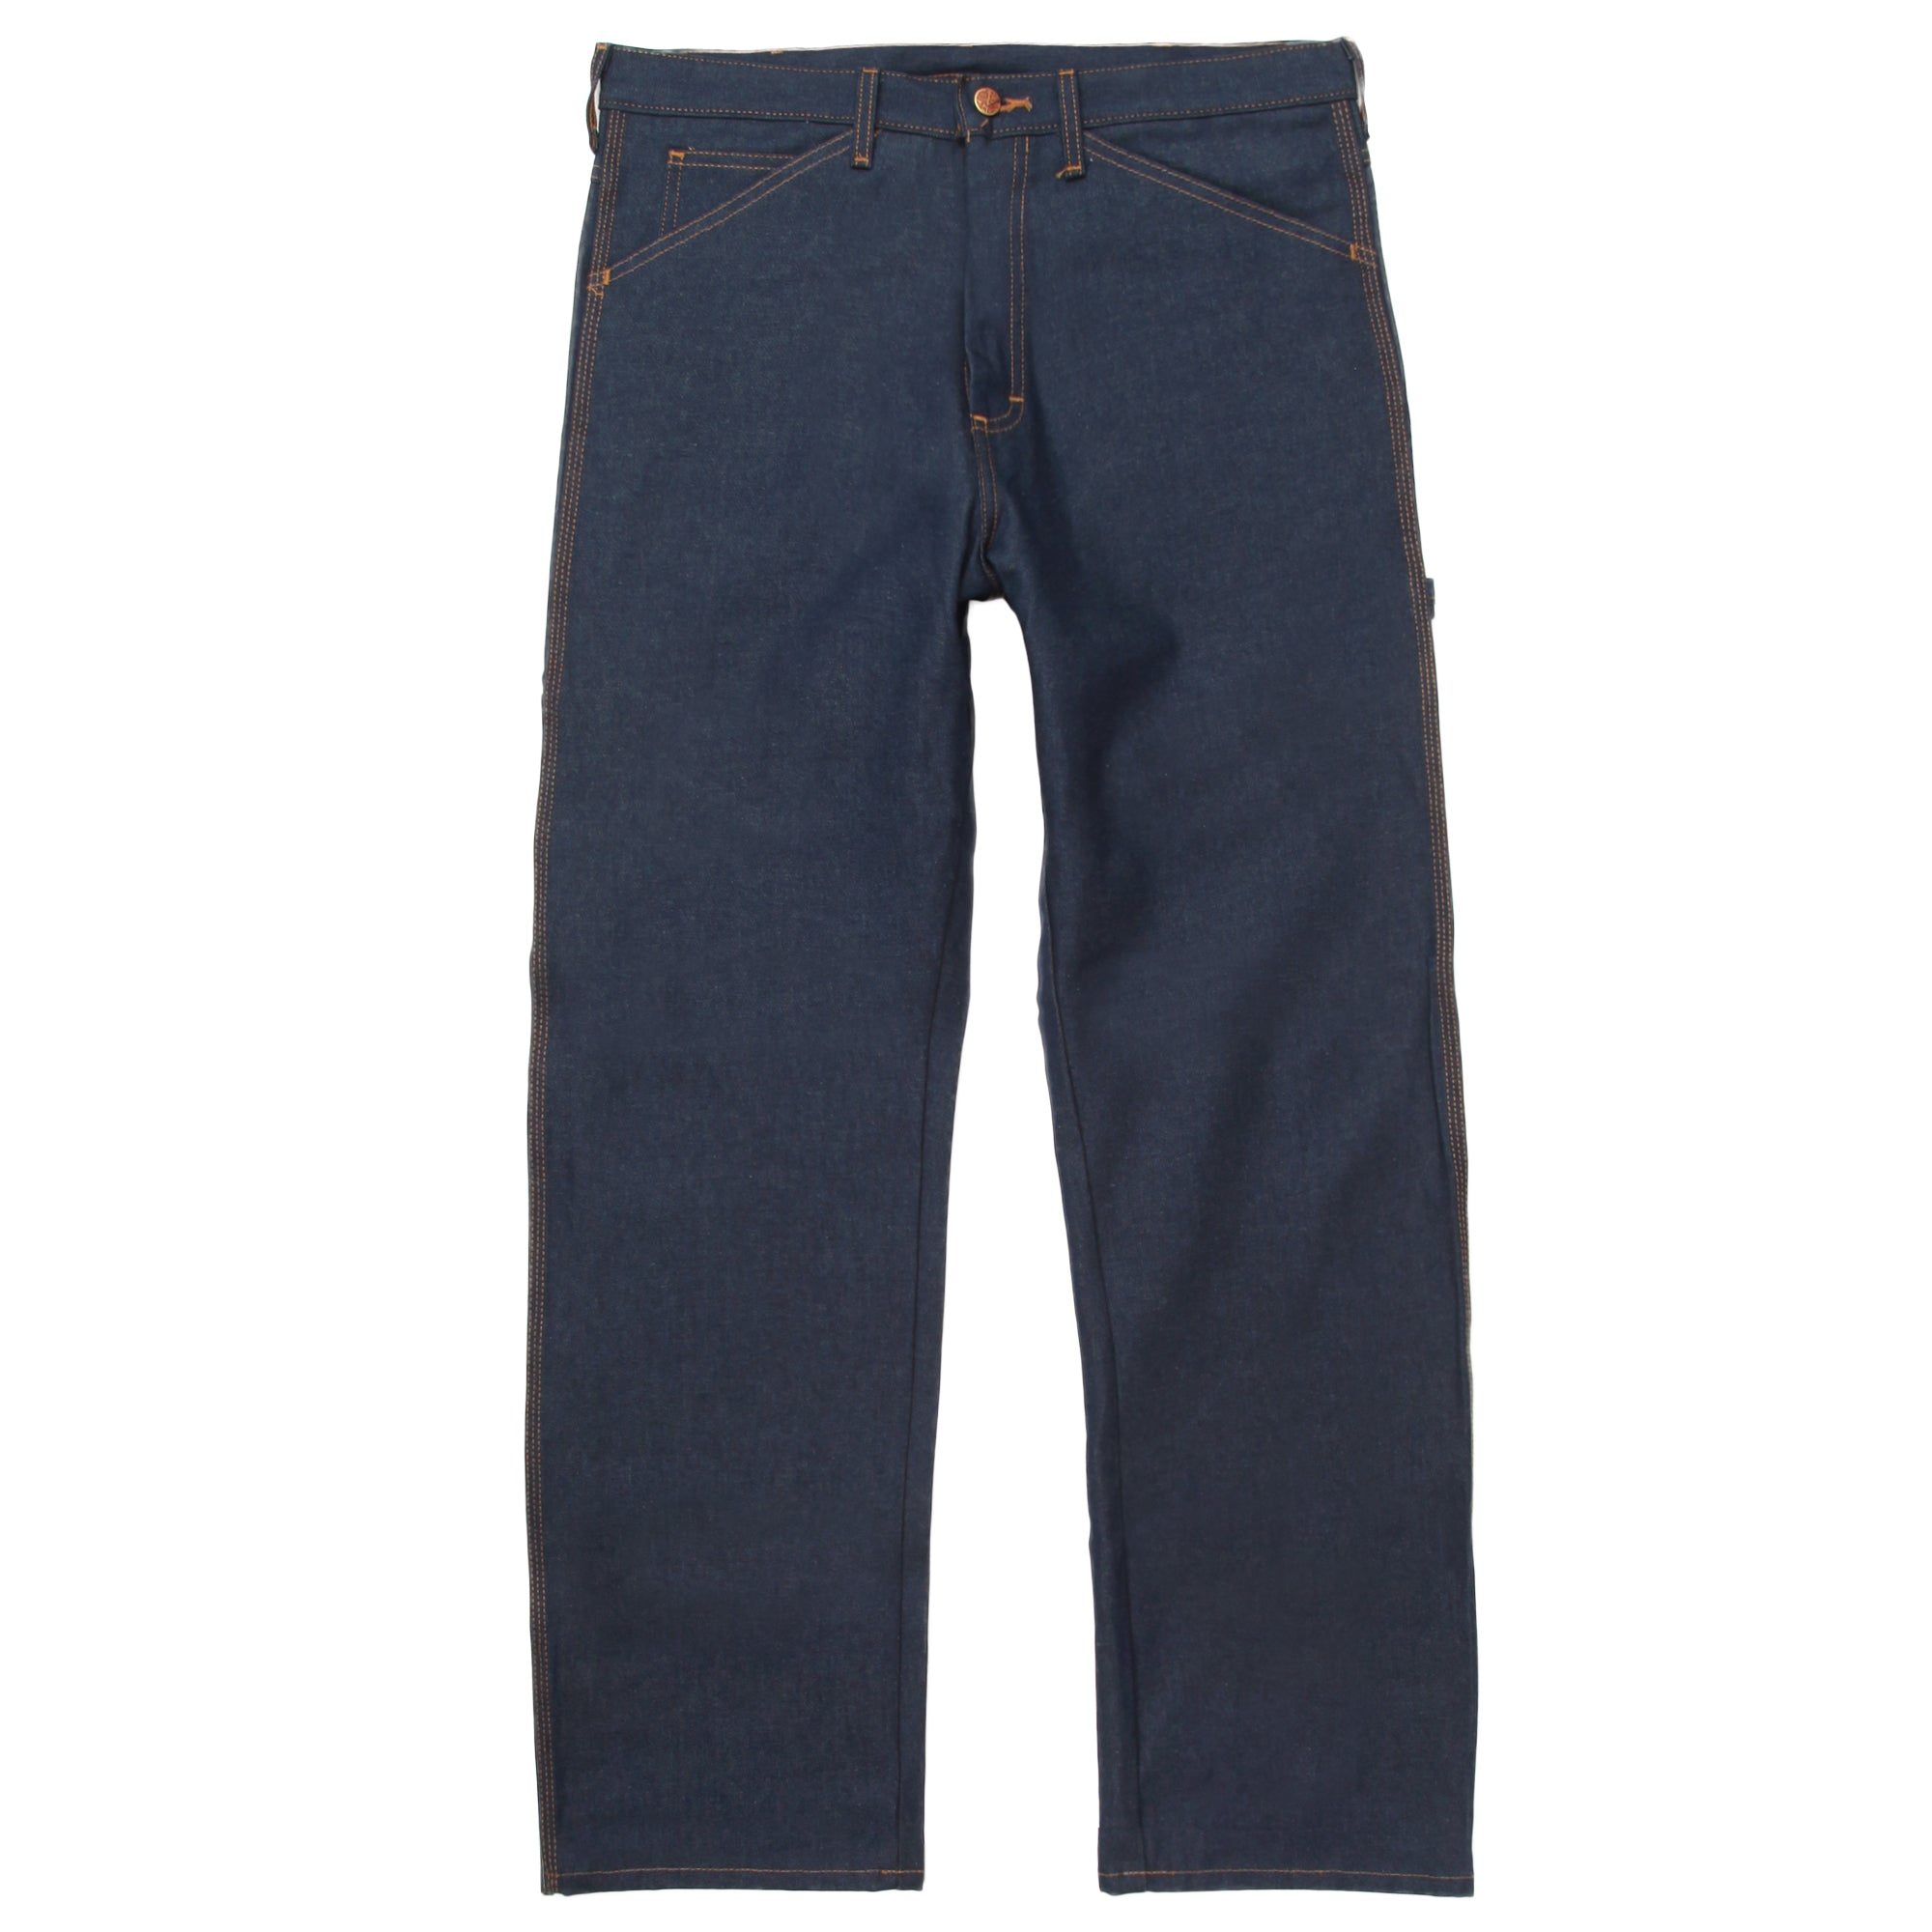 Round House 14oz Carpenter Jeans #101 - Raw Indigo